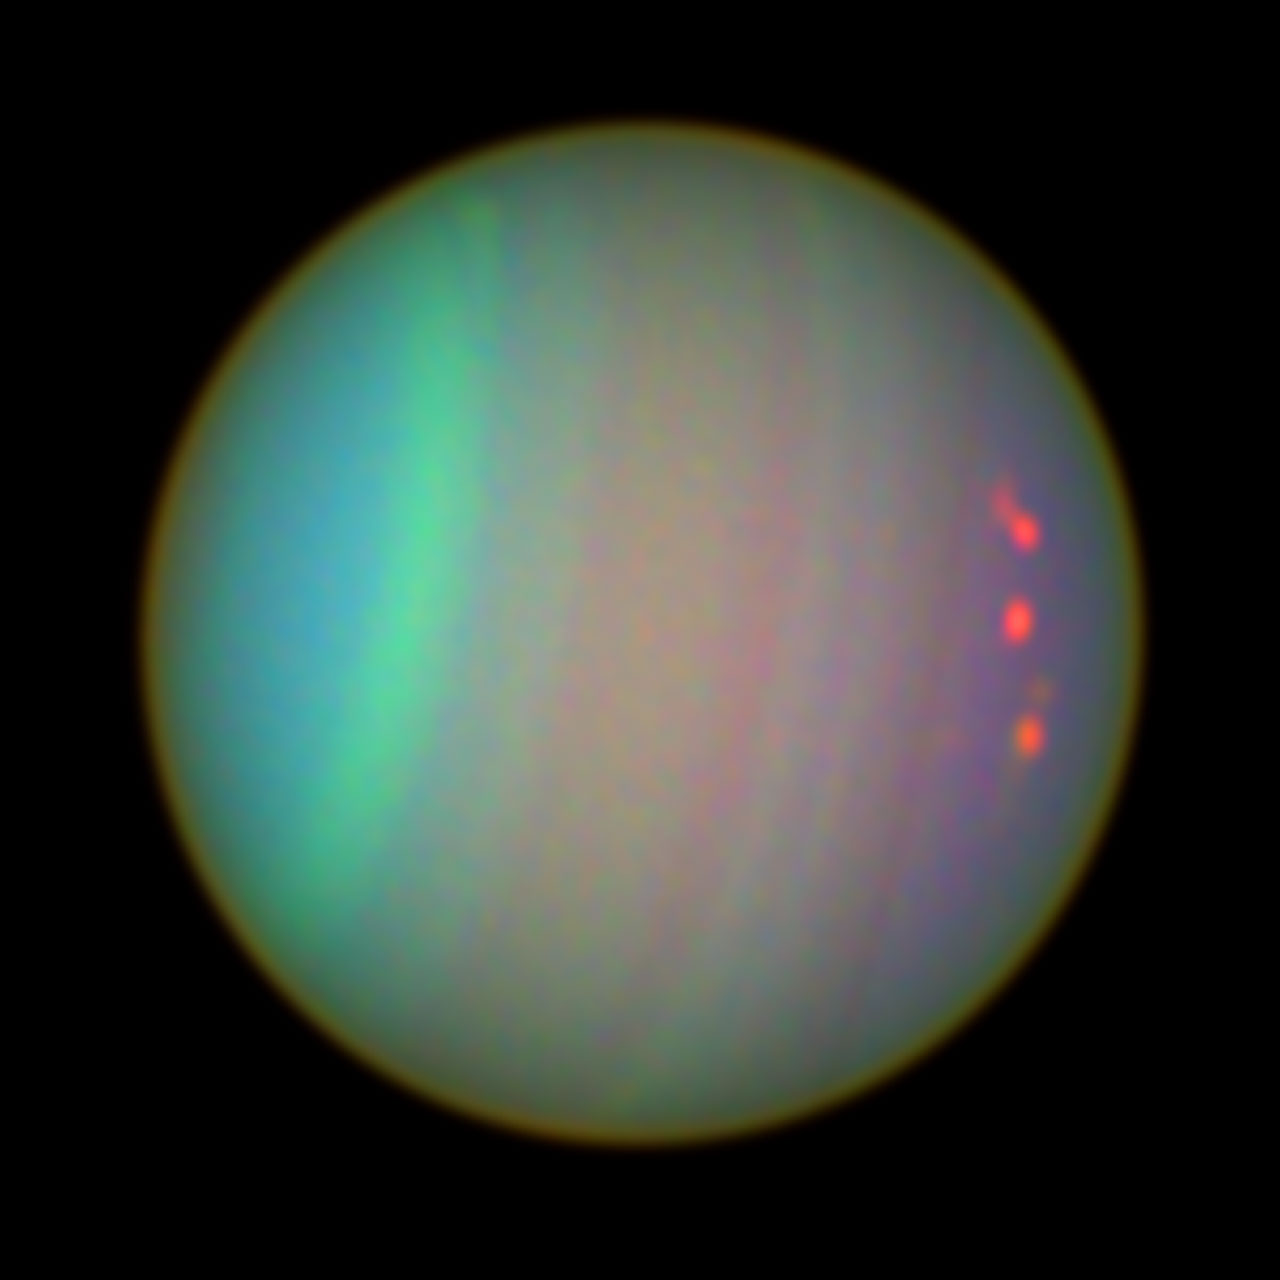 Uranus as Seen with colour Filters